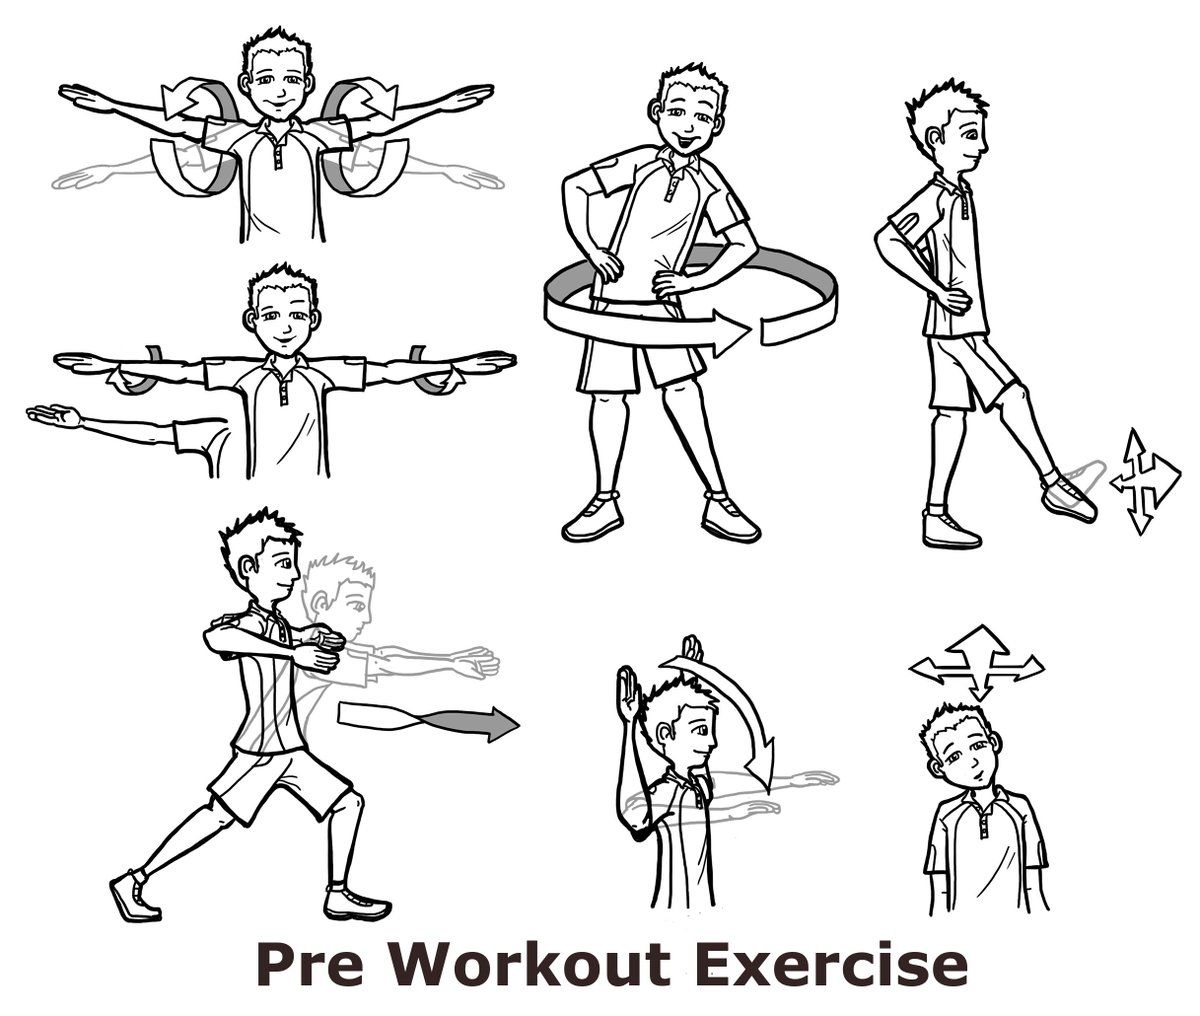 Pin By Ucifuturehealth On Workout Exercise And Fitness Tips